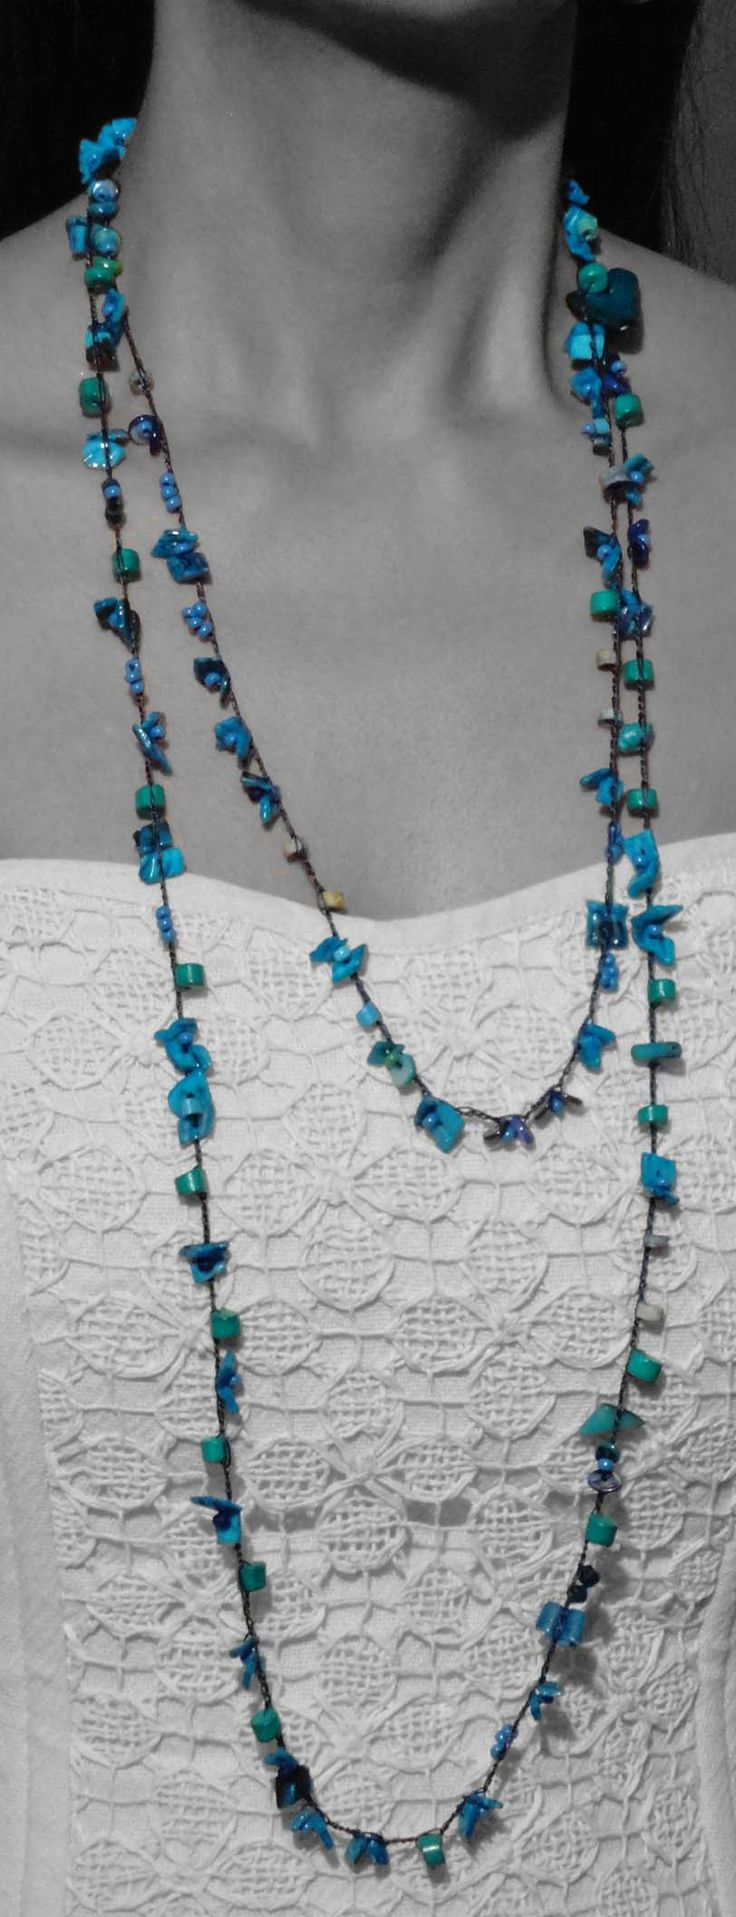 Vivid fancy blue and turquoise ceramic beads harmonized with   Ammandras (a dried seedpod of the  tropical rainforests' Palm-tree – Ammandra Decasperma- which grows in South America), create a simply stunning long necklace.